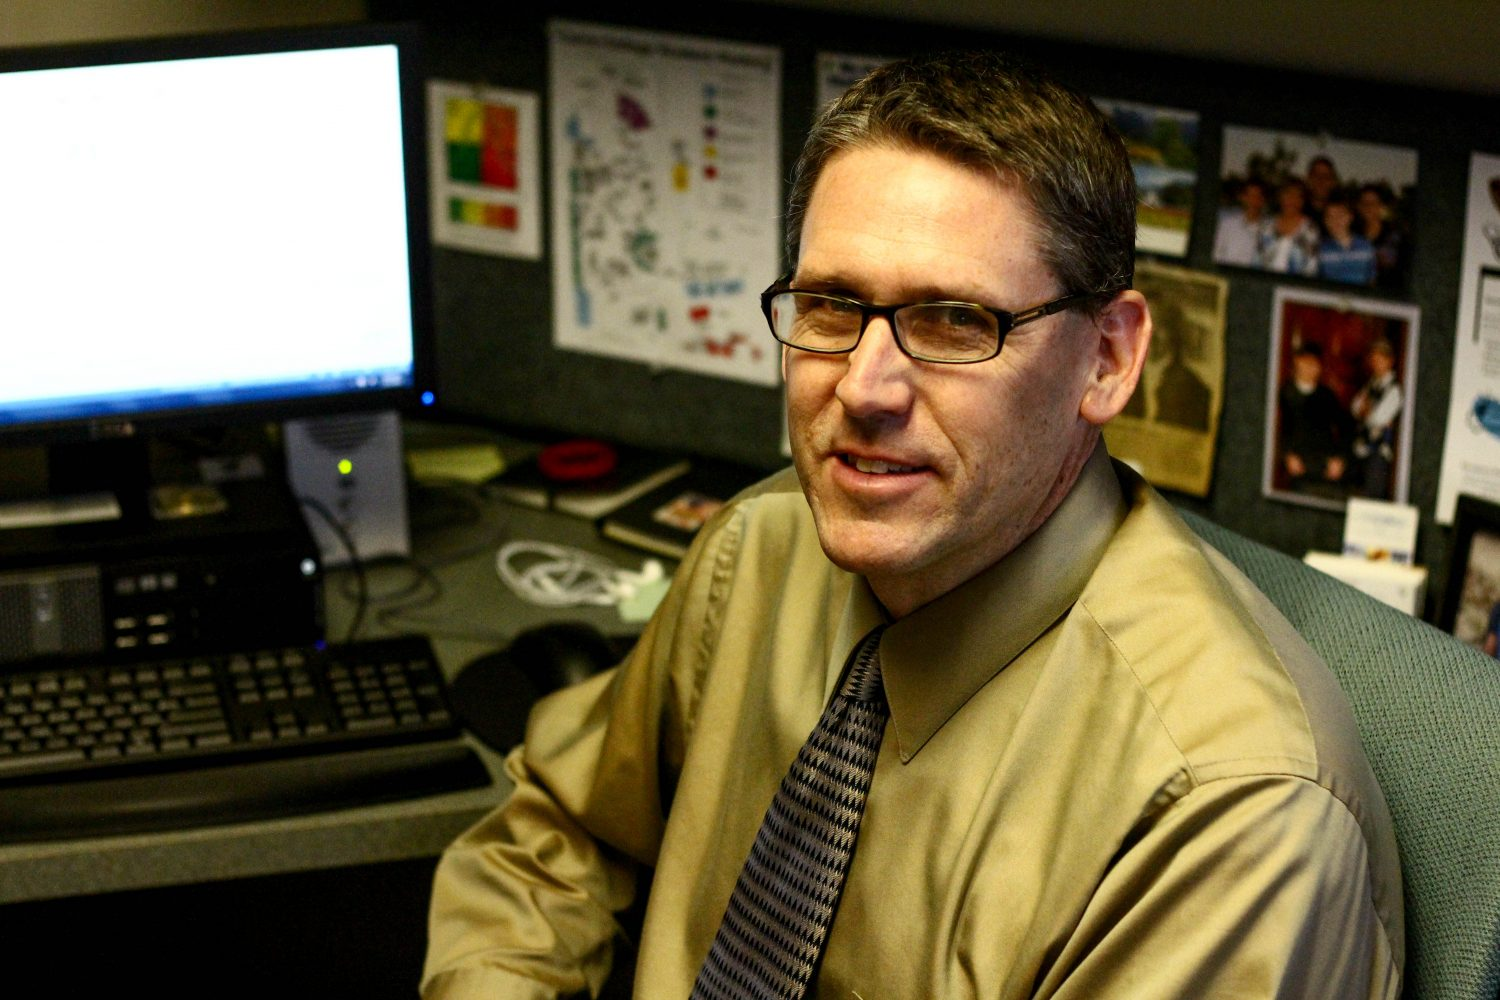 New campus safety assistant director brings police force experience